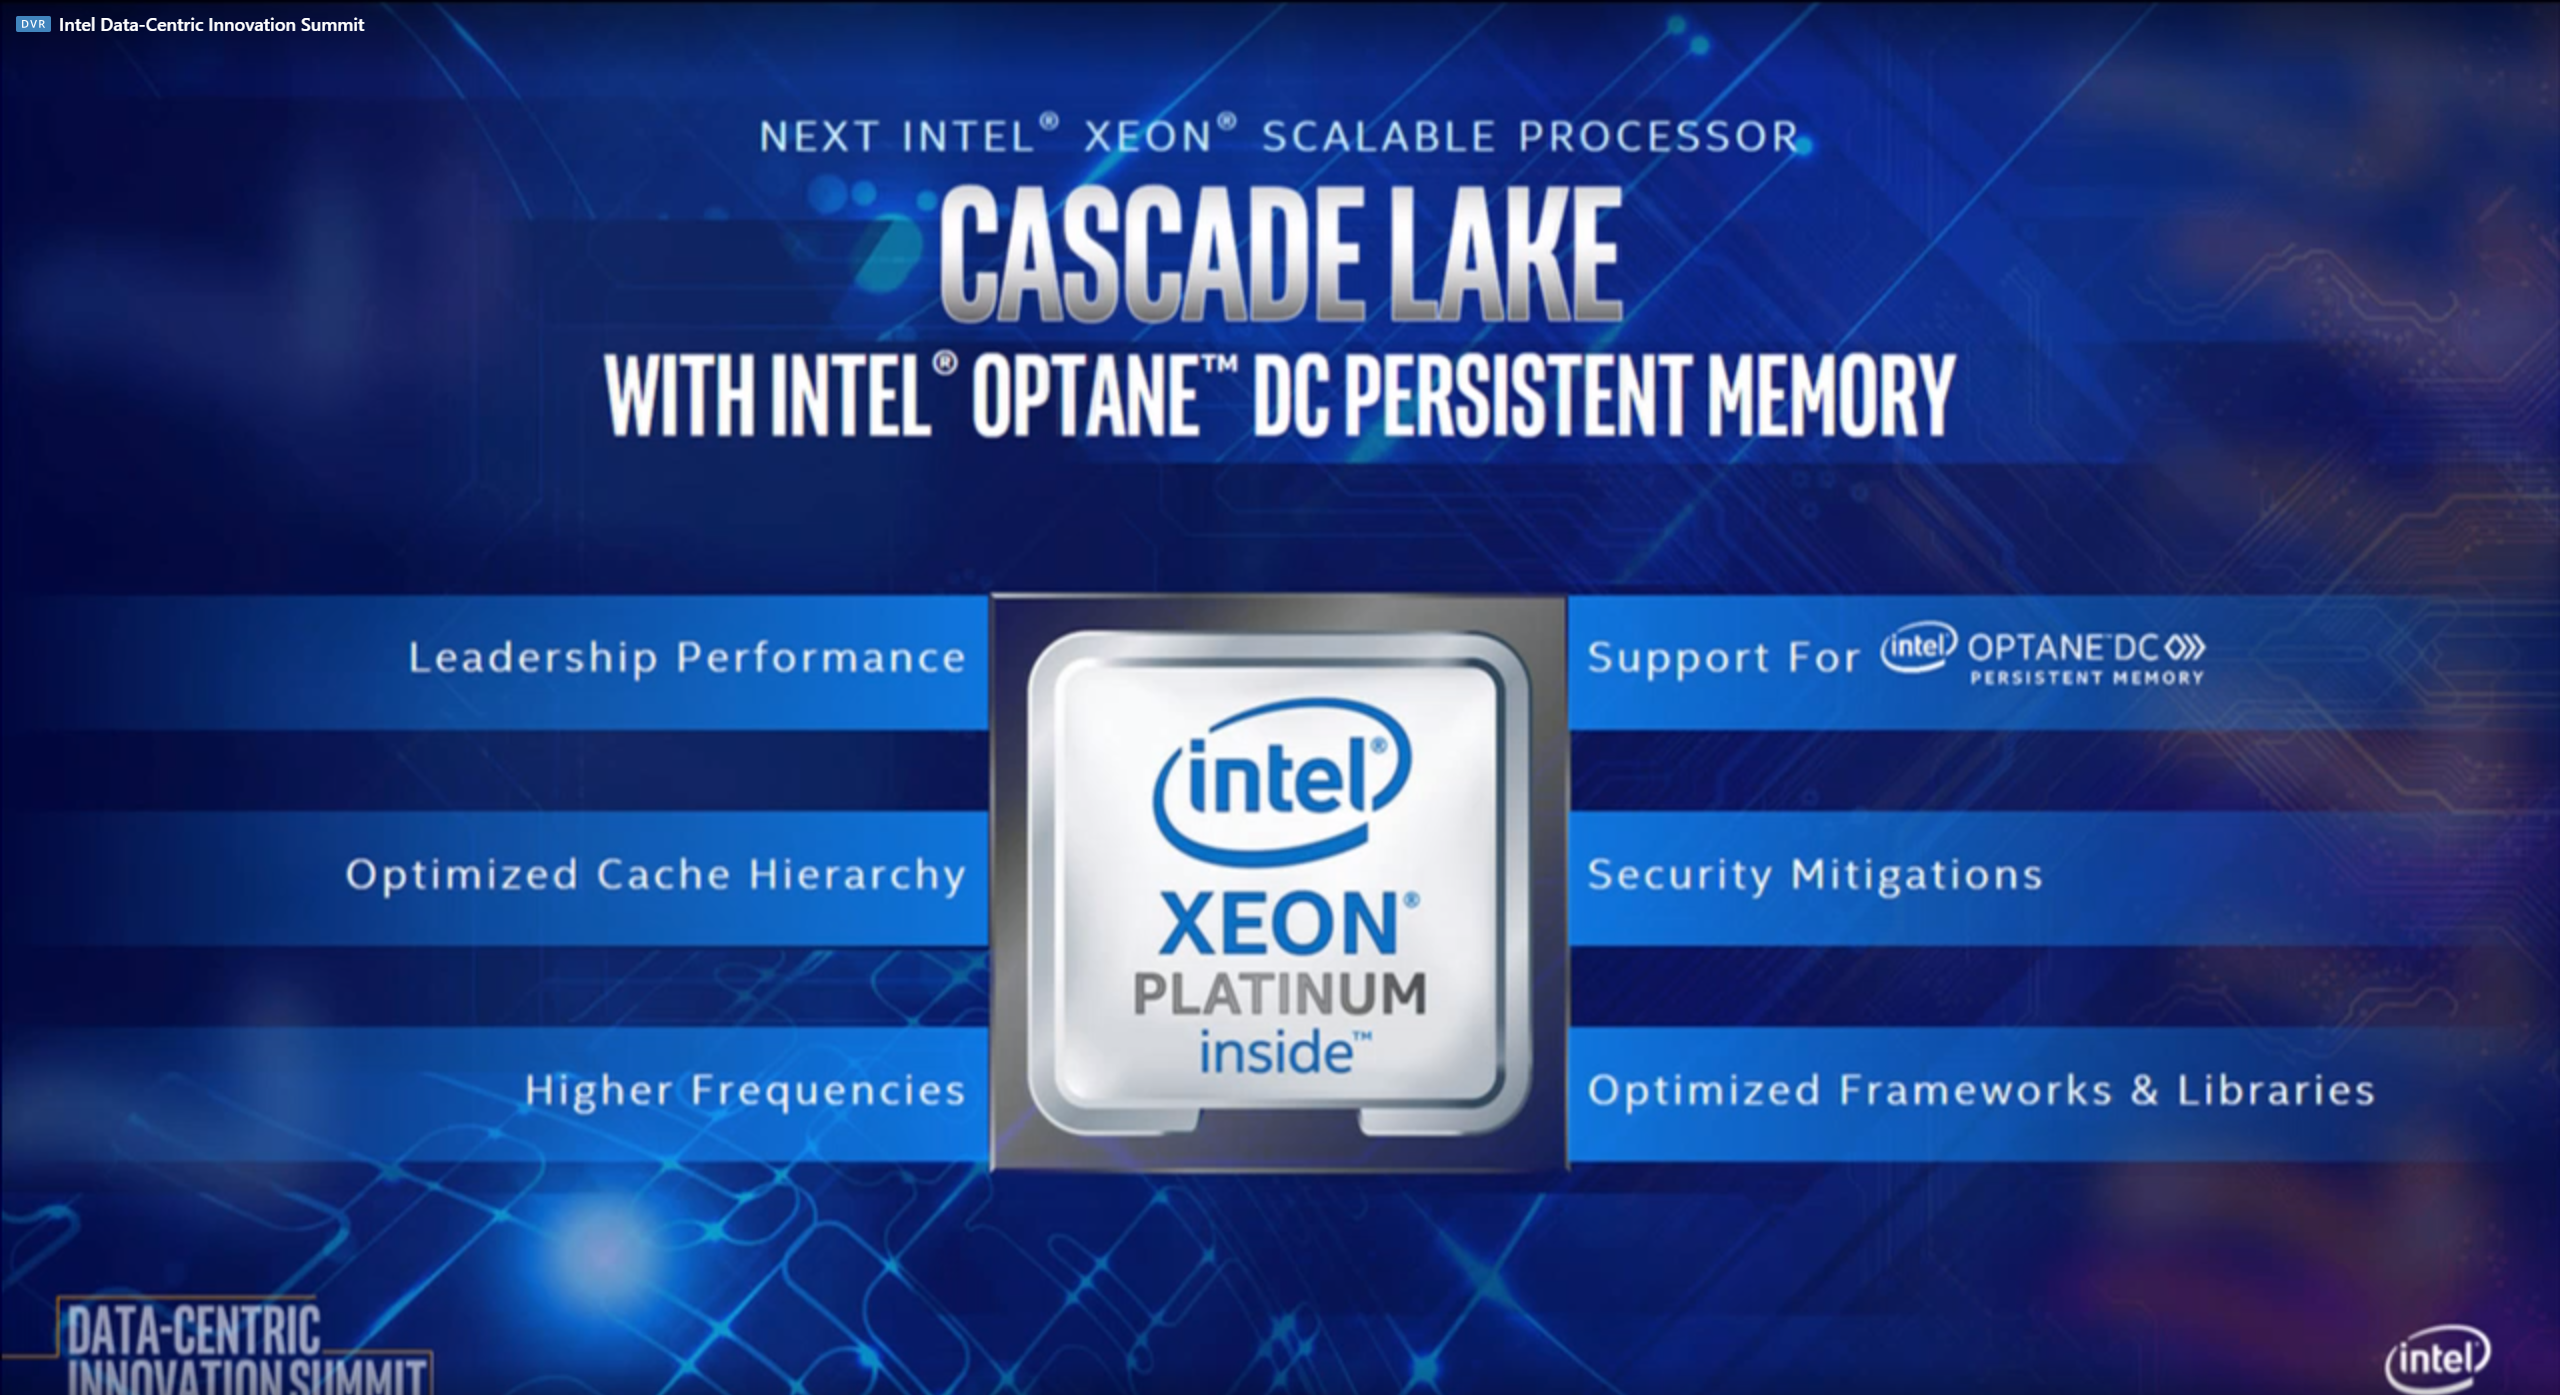 Intel Confirms 14nm Cooper Lake-SP Xeon in 2019, 10nm Ice